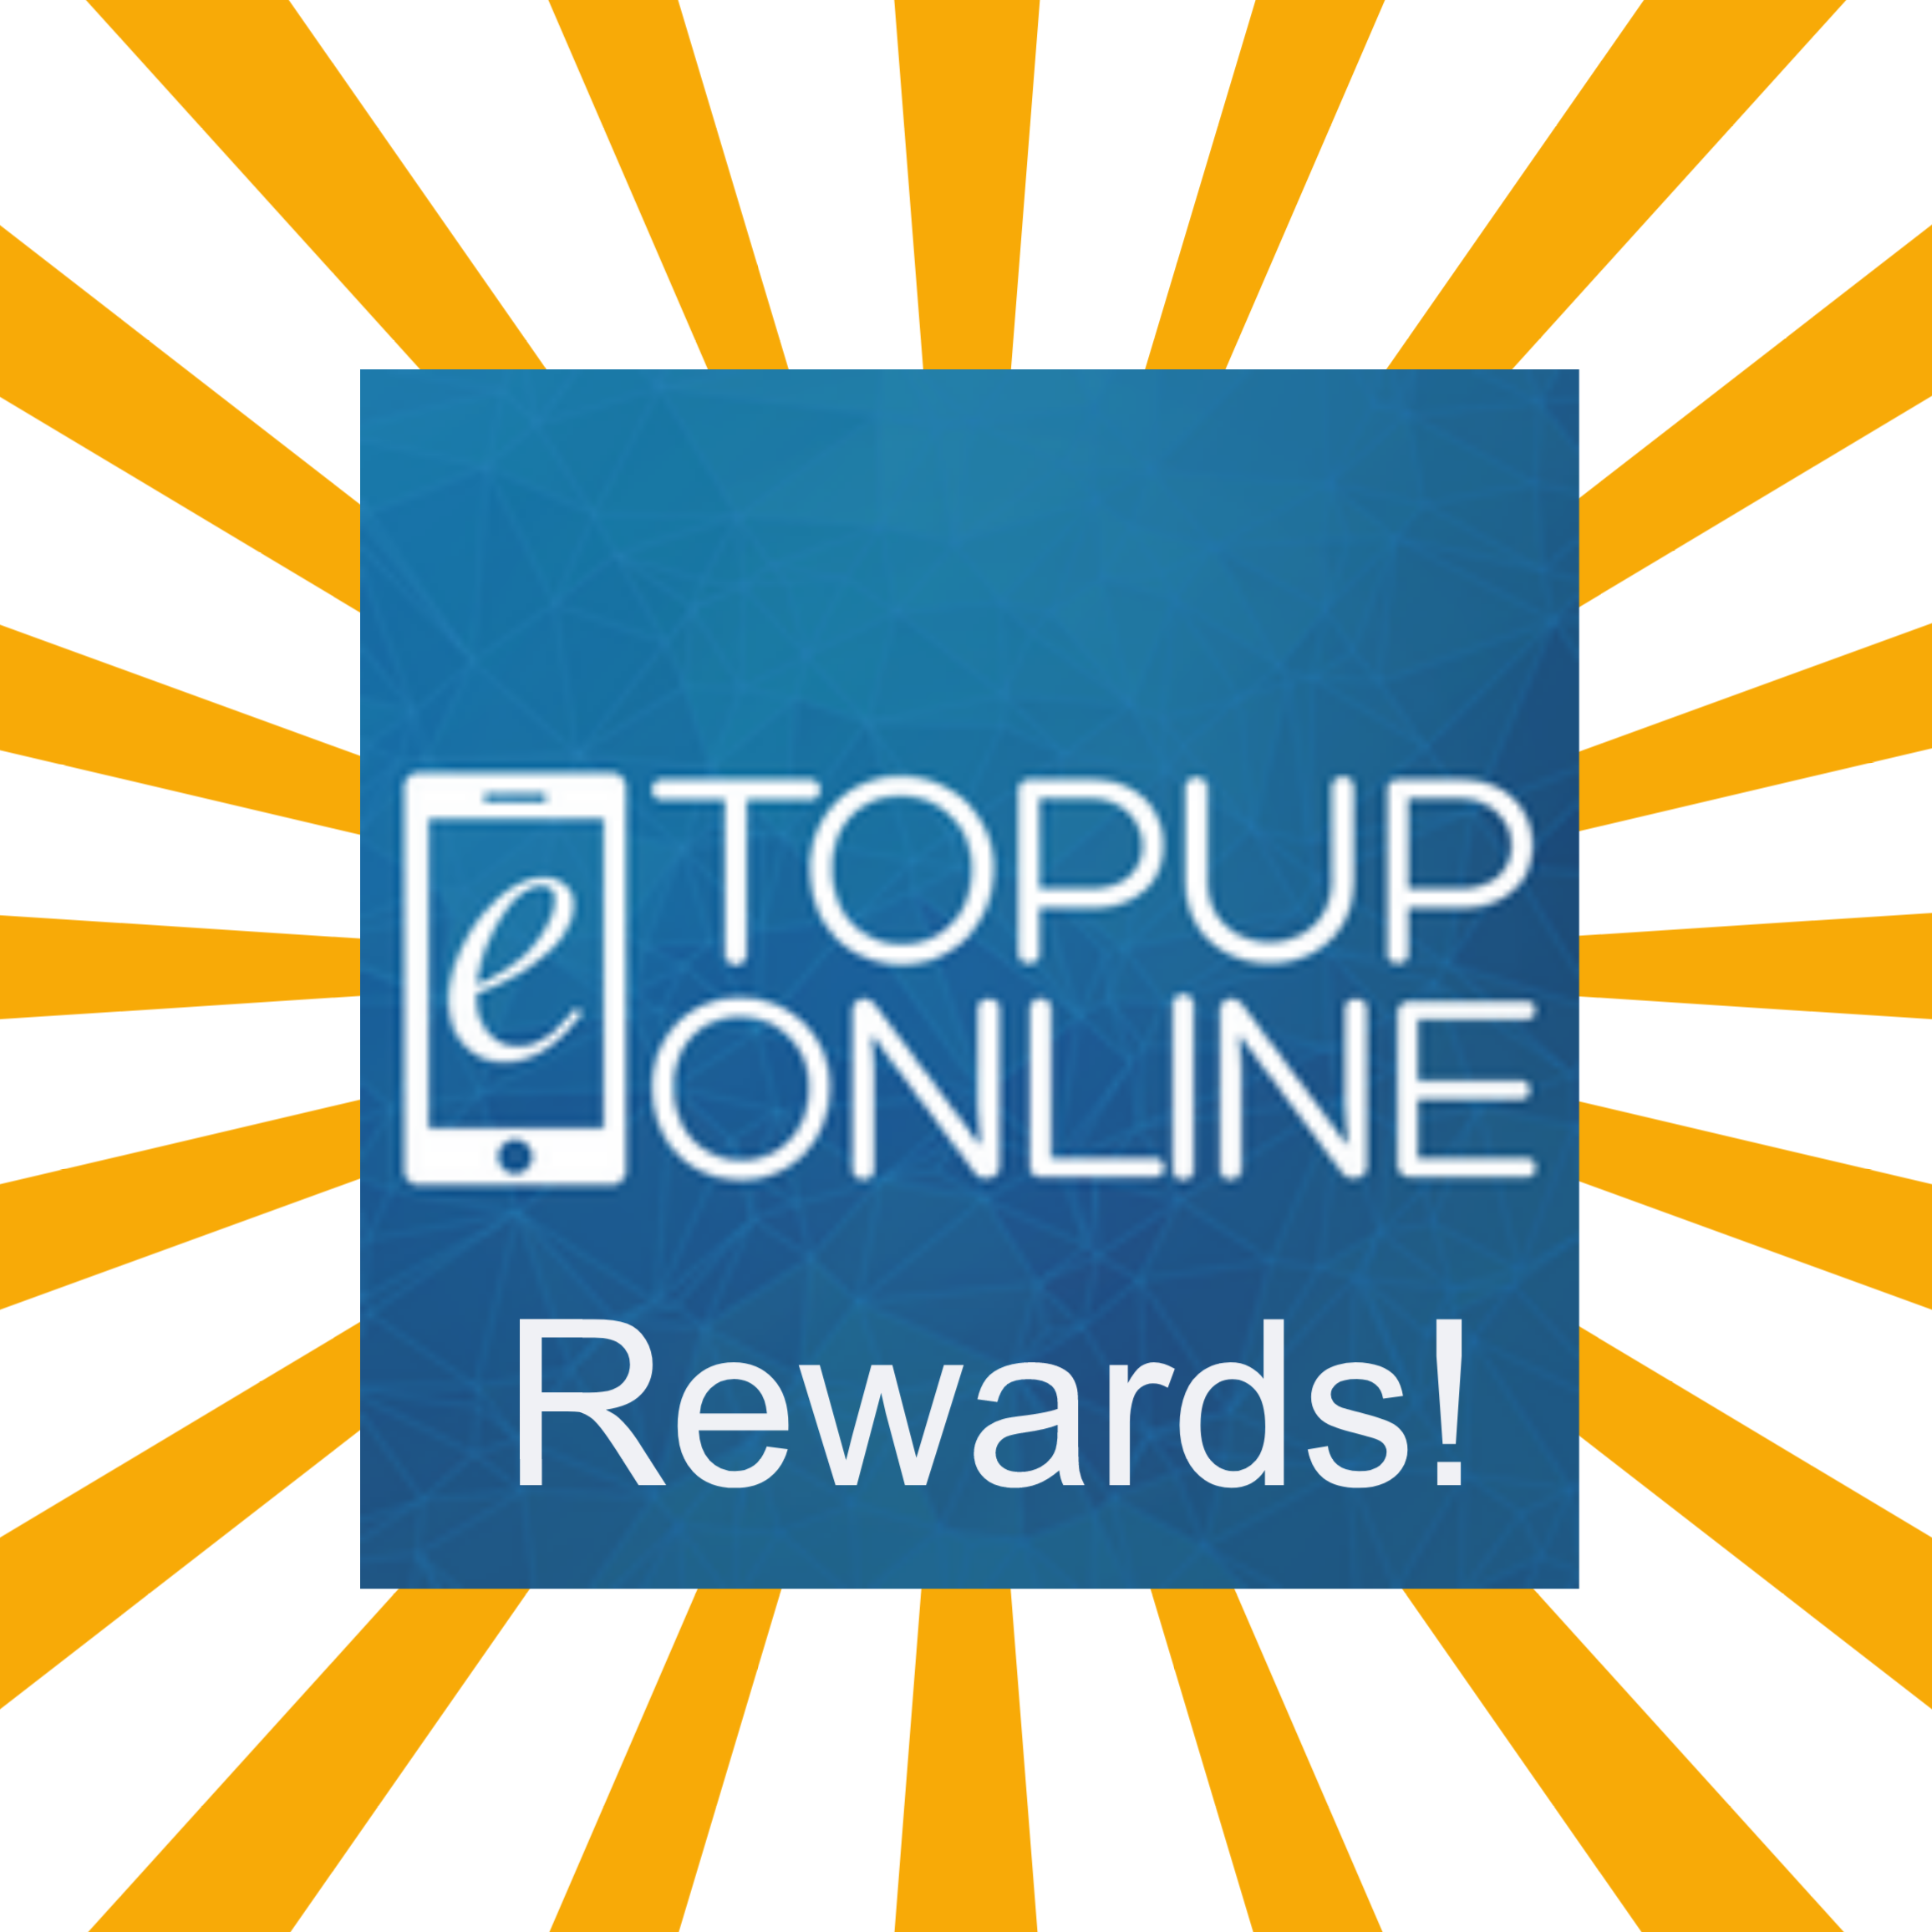 eTopUp Rewards - How To Earn Free Minutes